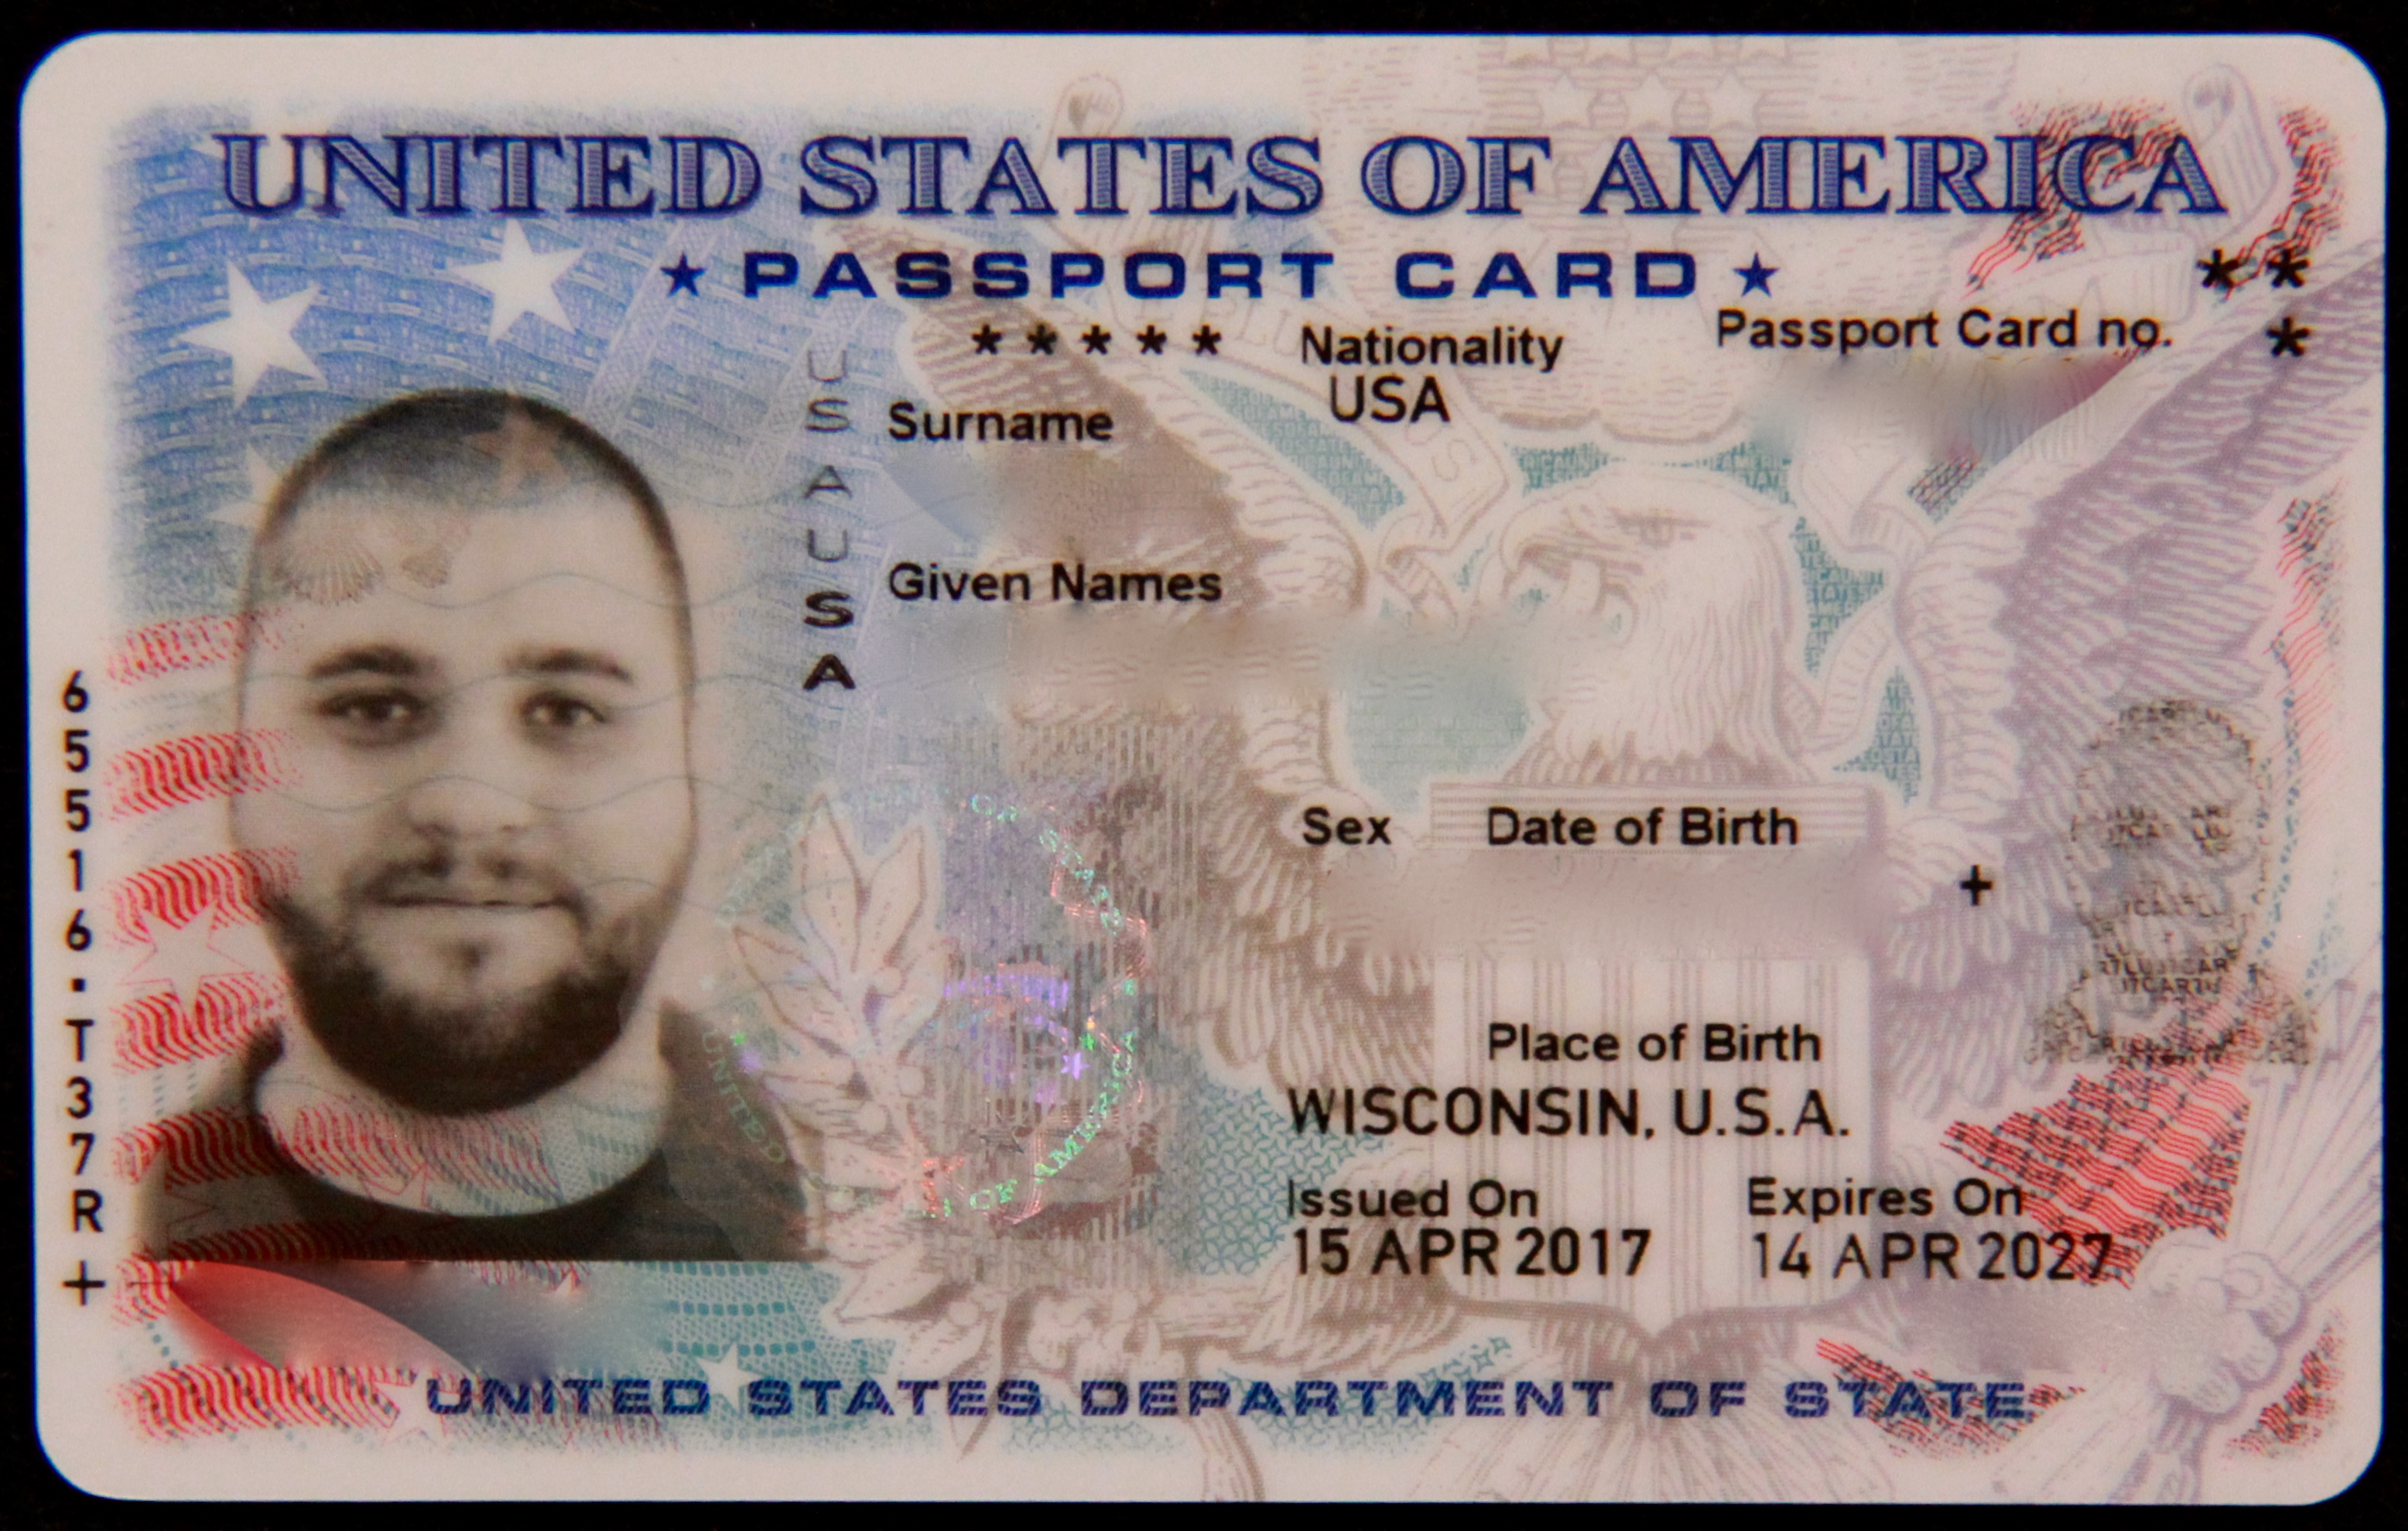 Passport Card - MVD Services, Travel ID, Drivers License